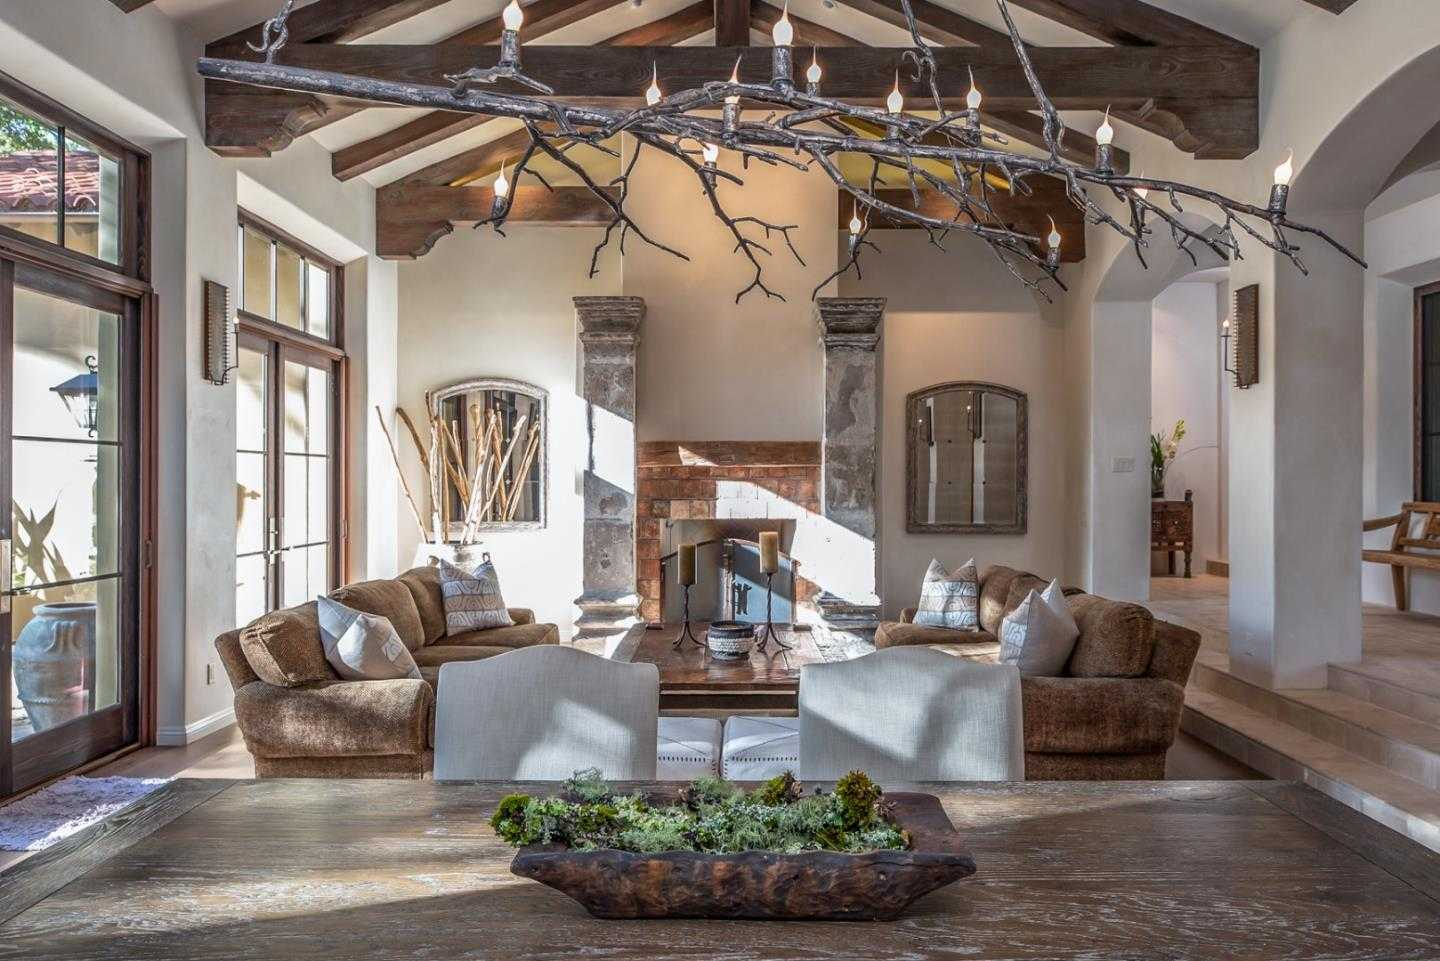 $3,650,000 - 3Br/4Ba -  for Sale in Carmel